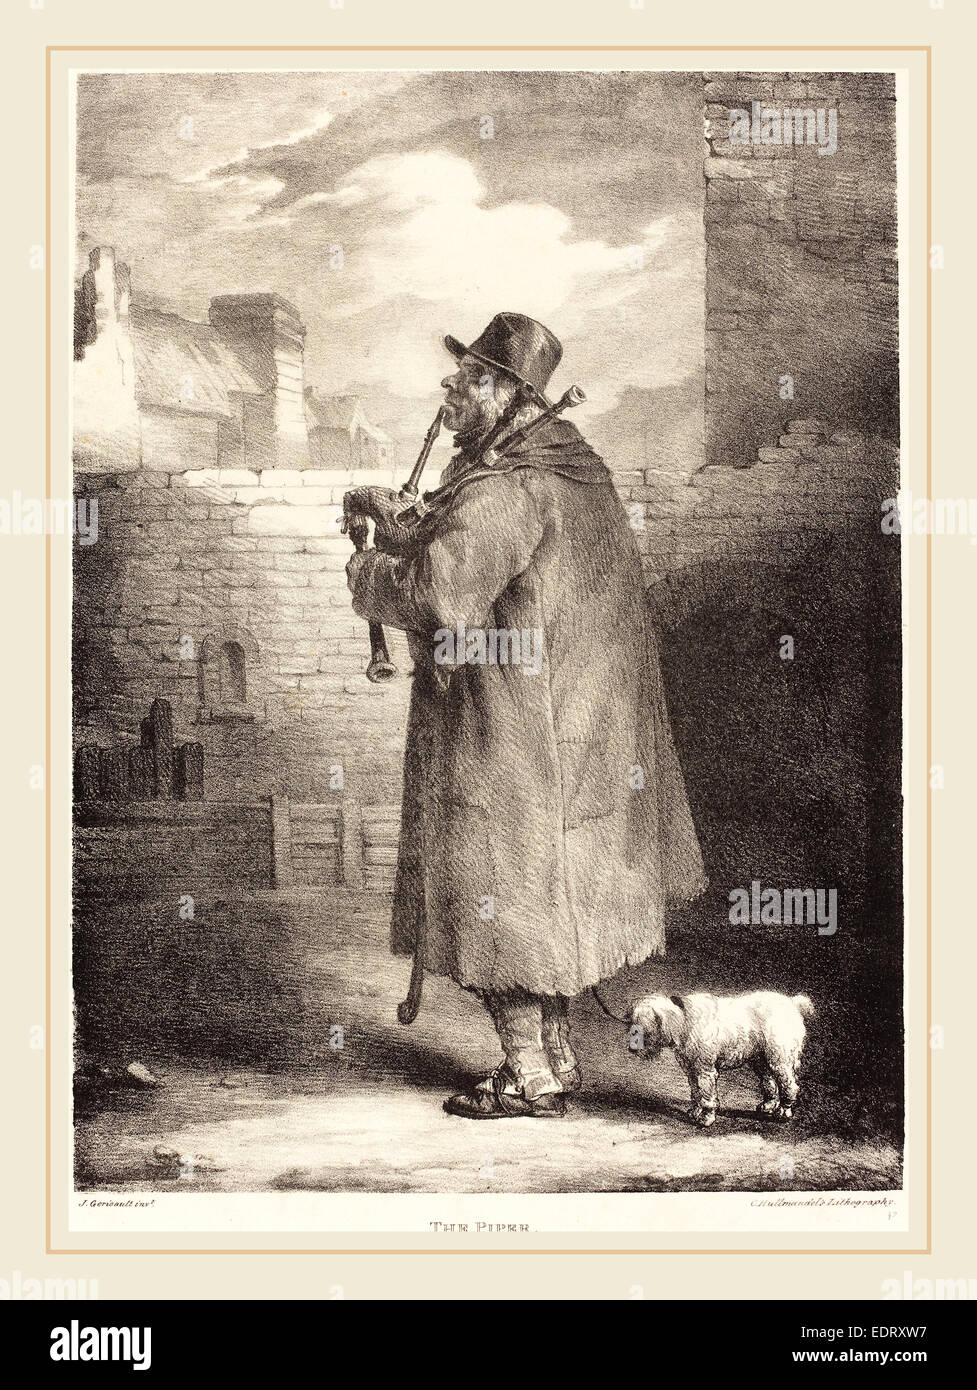 Théodore Gericault (French, 1791-1824), The Piper, 1821, lithograph - Stock Image